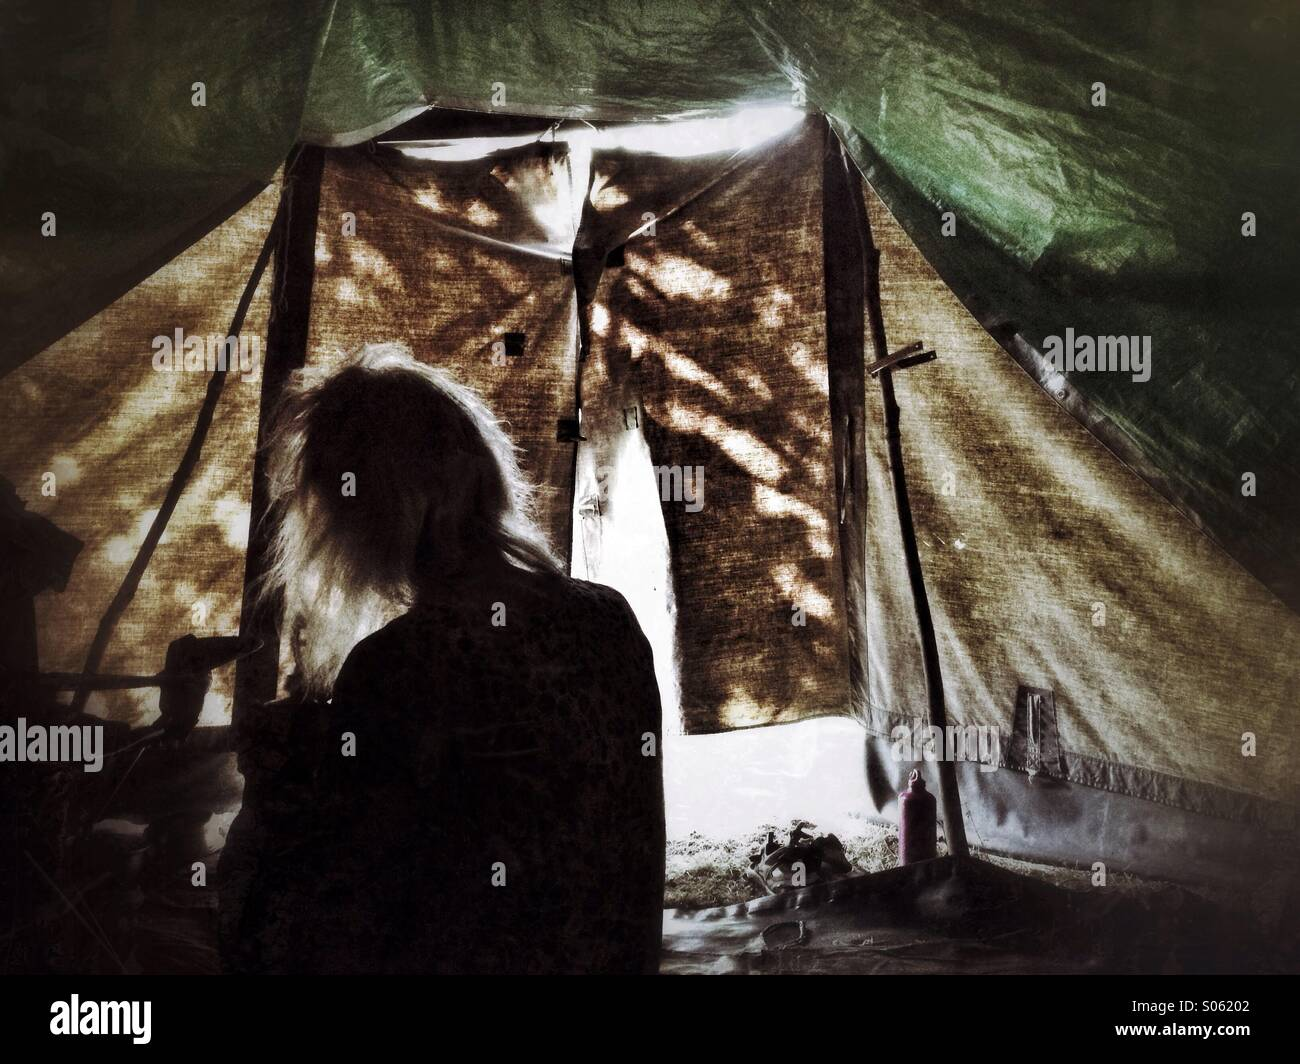 Inside the tent - Stock Image